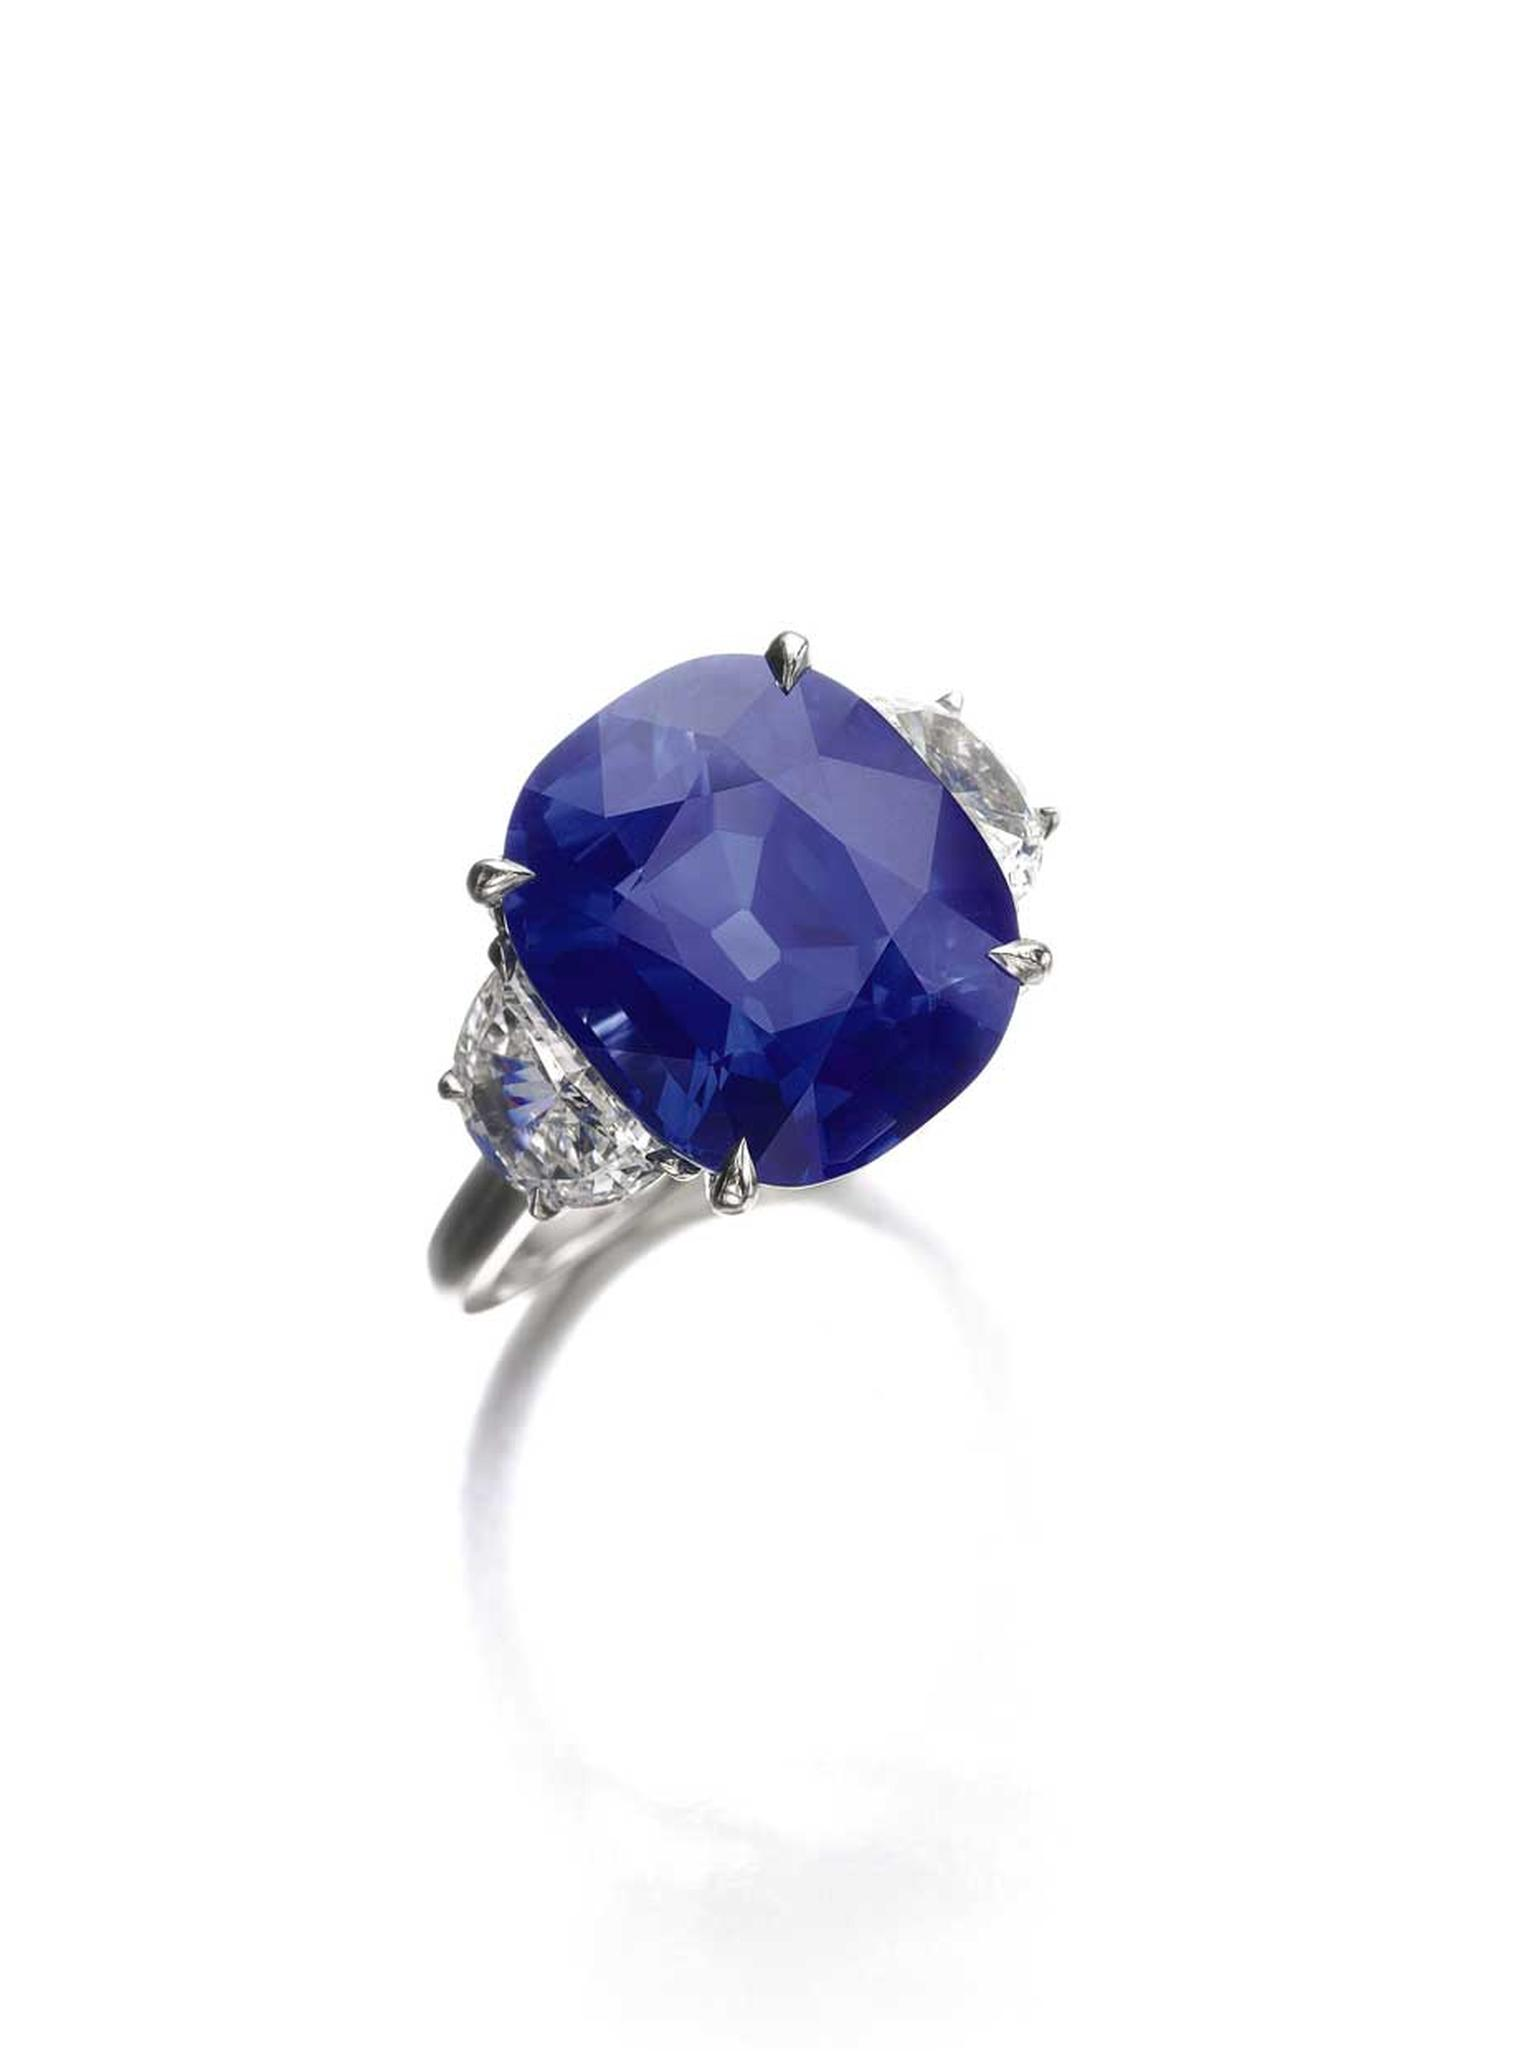 10.96ct cushion-shaped Kashmir sapphire ring between two demi-lune diamond shoulders. Sold for CHF 1,600,000 (estimate: CHF 1,100,000 - 1,400,000)